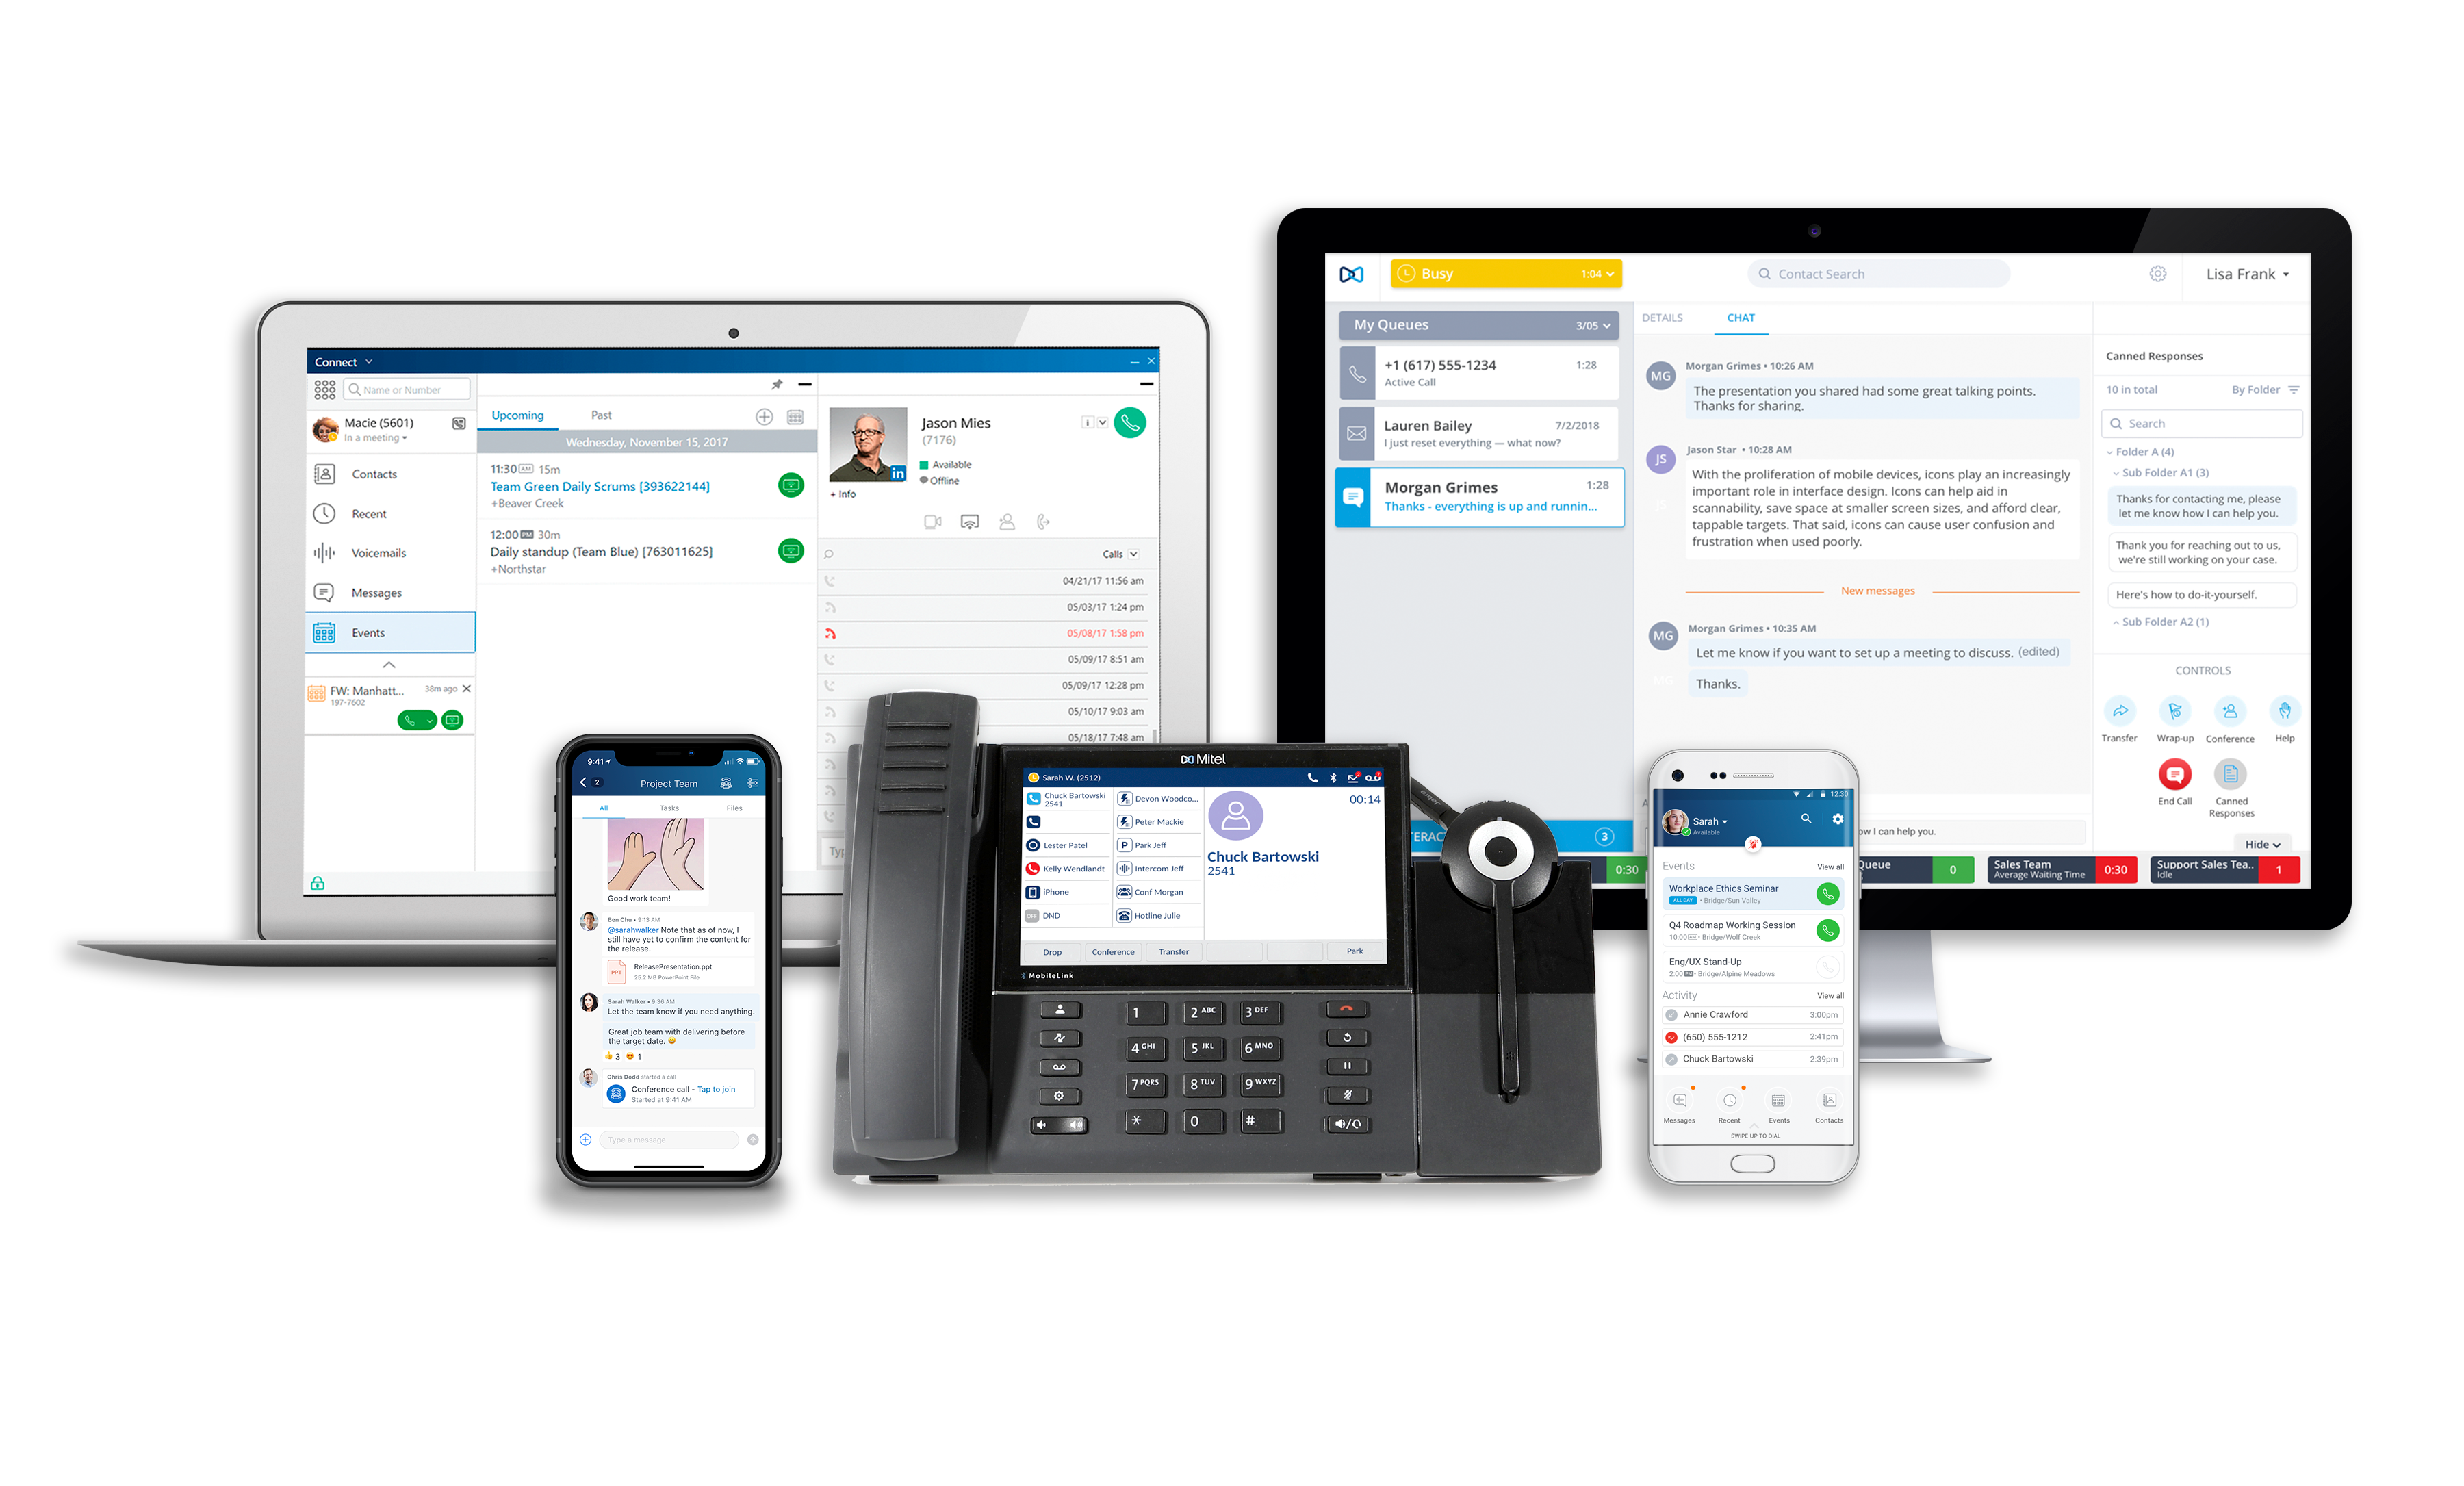 Mitel Full Connect Suite devices